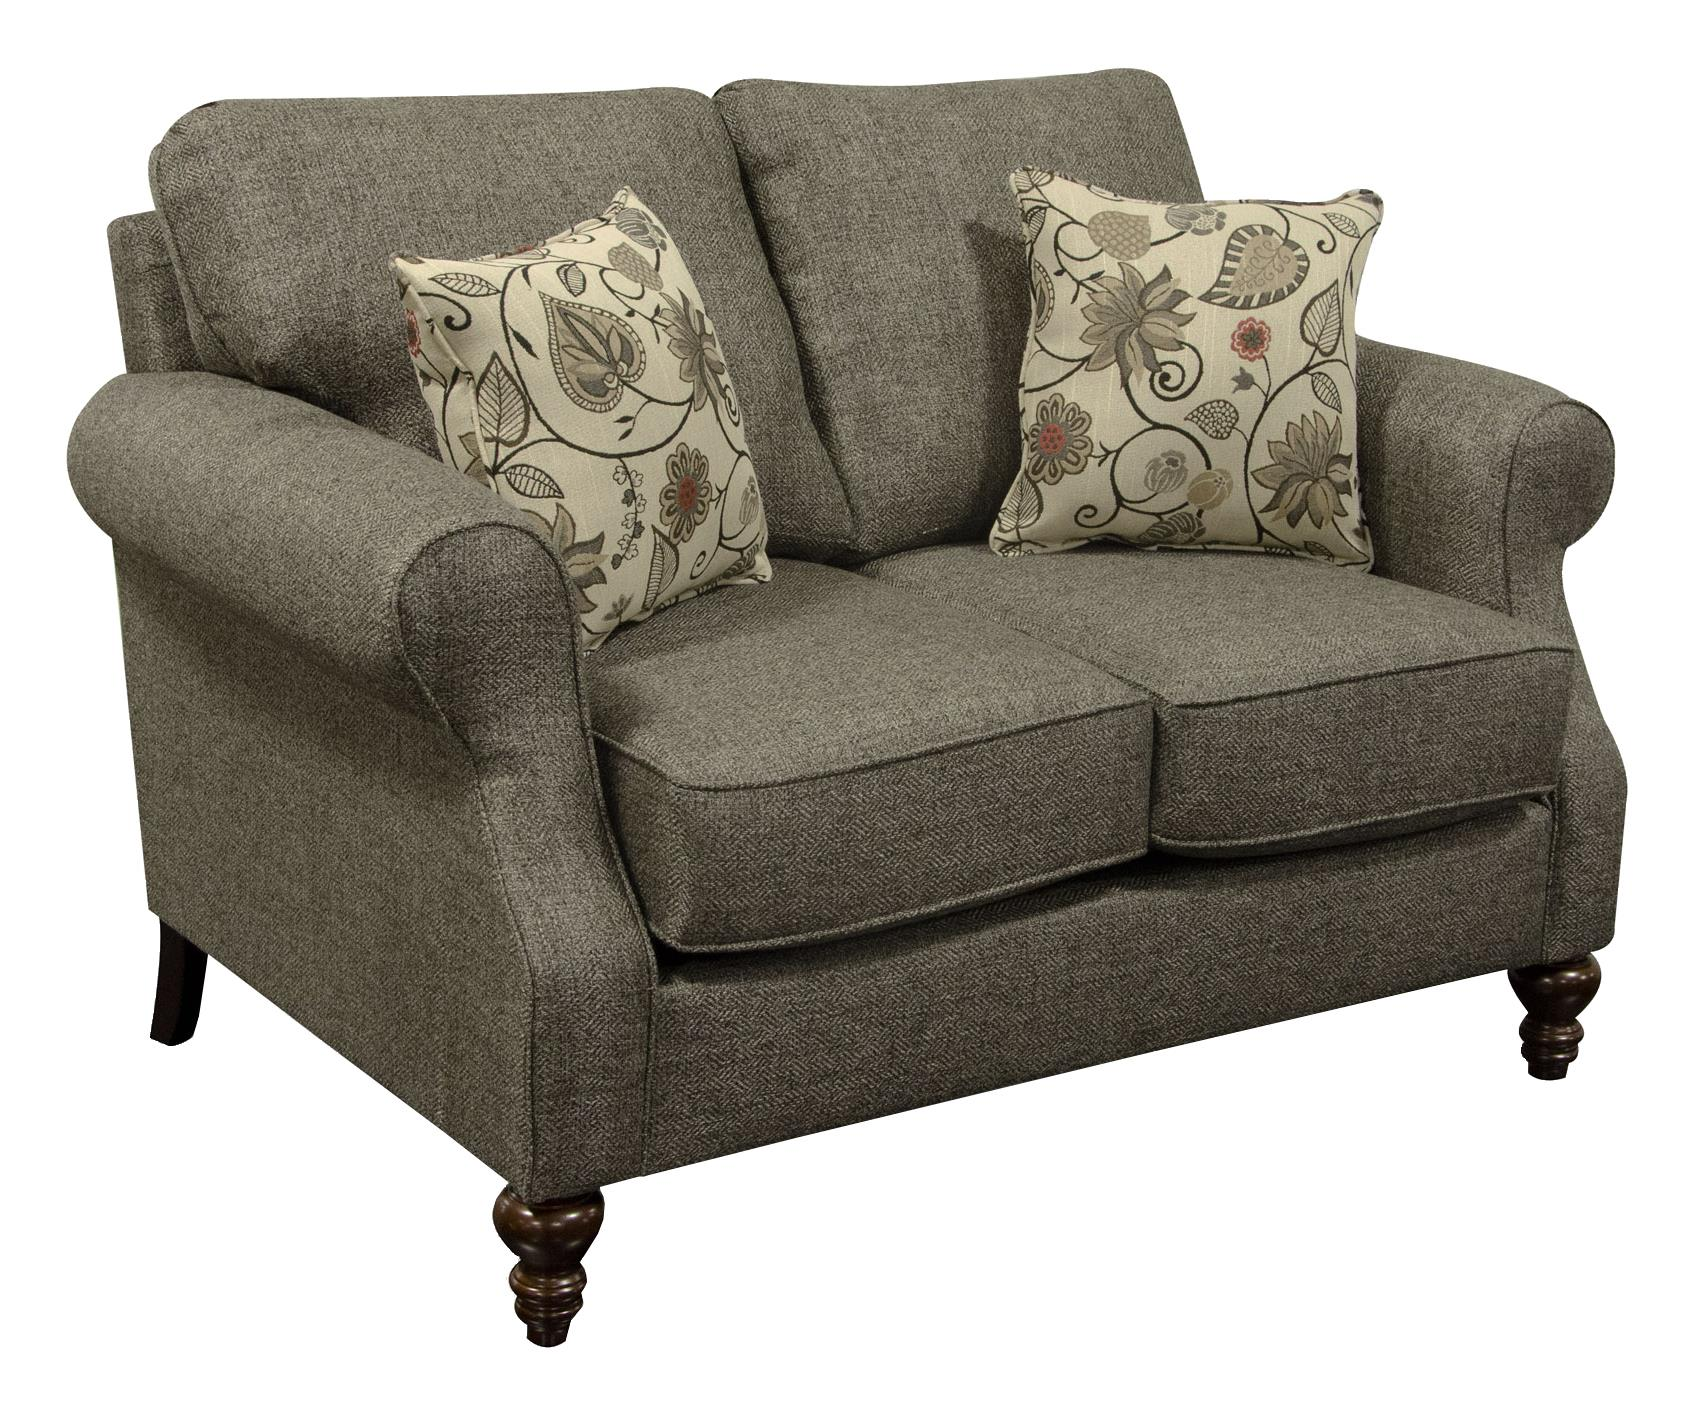 England Brinson and Jones Small Scale Loveseat - Item Number: 1Z06-7368